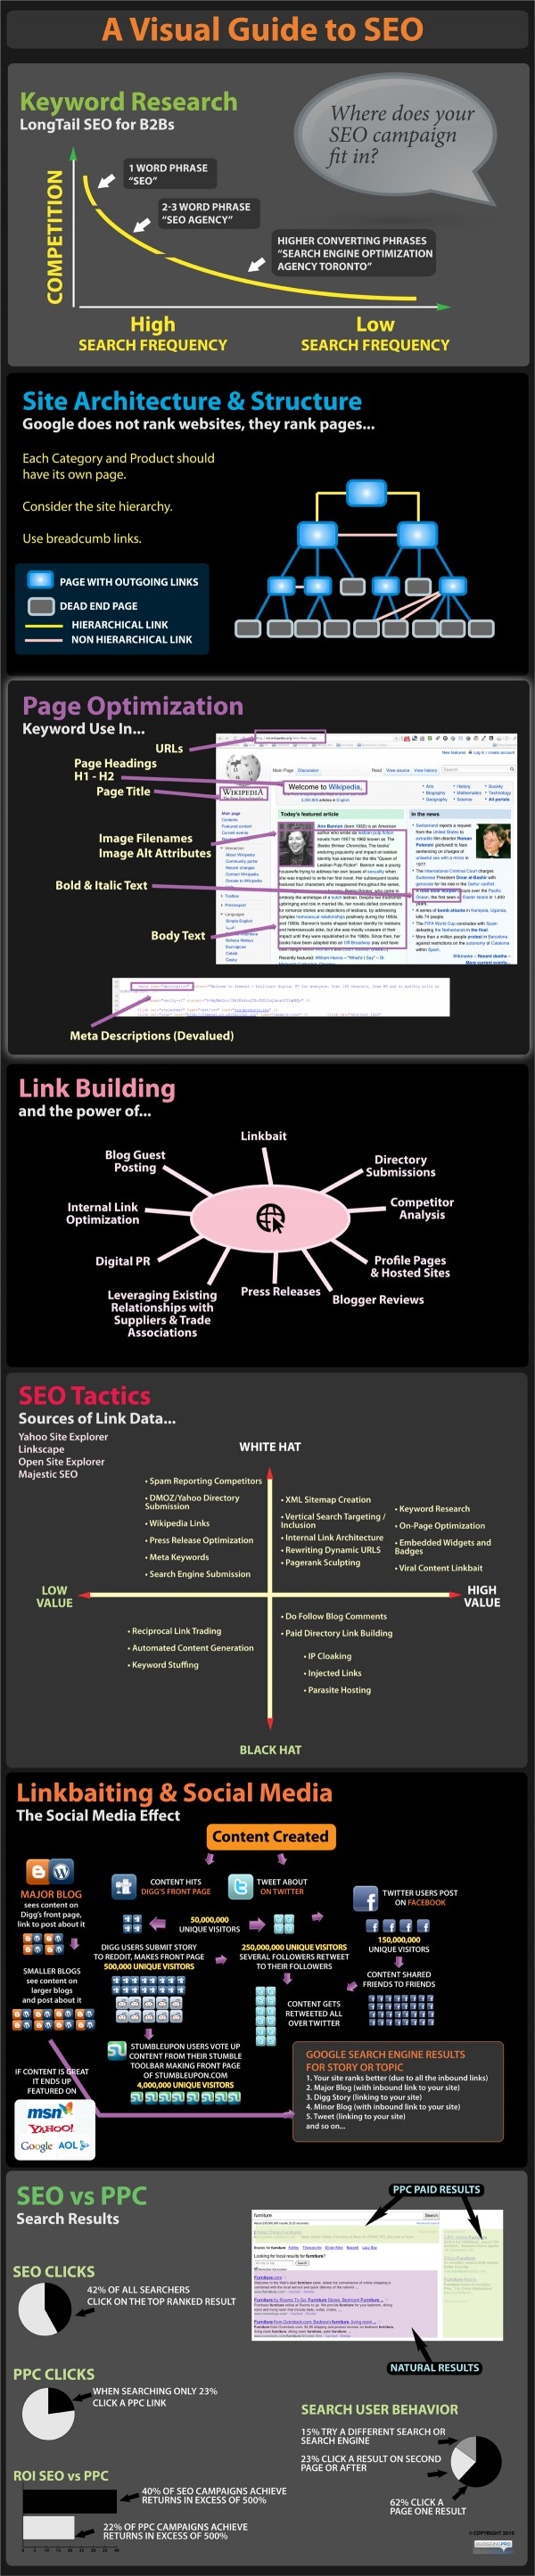 Complete SEO Guide infographic